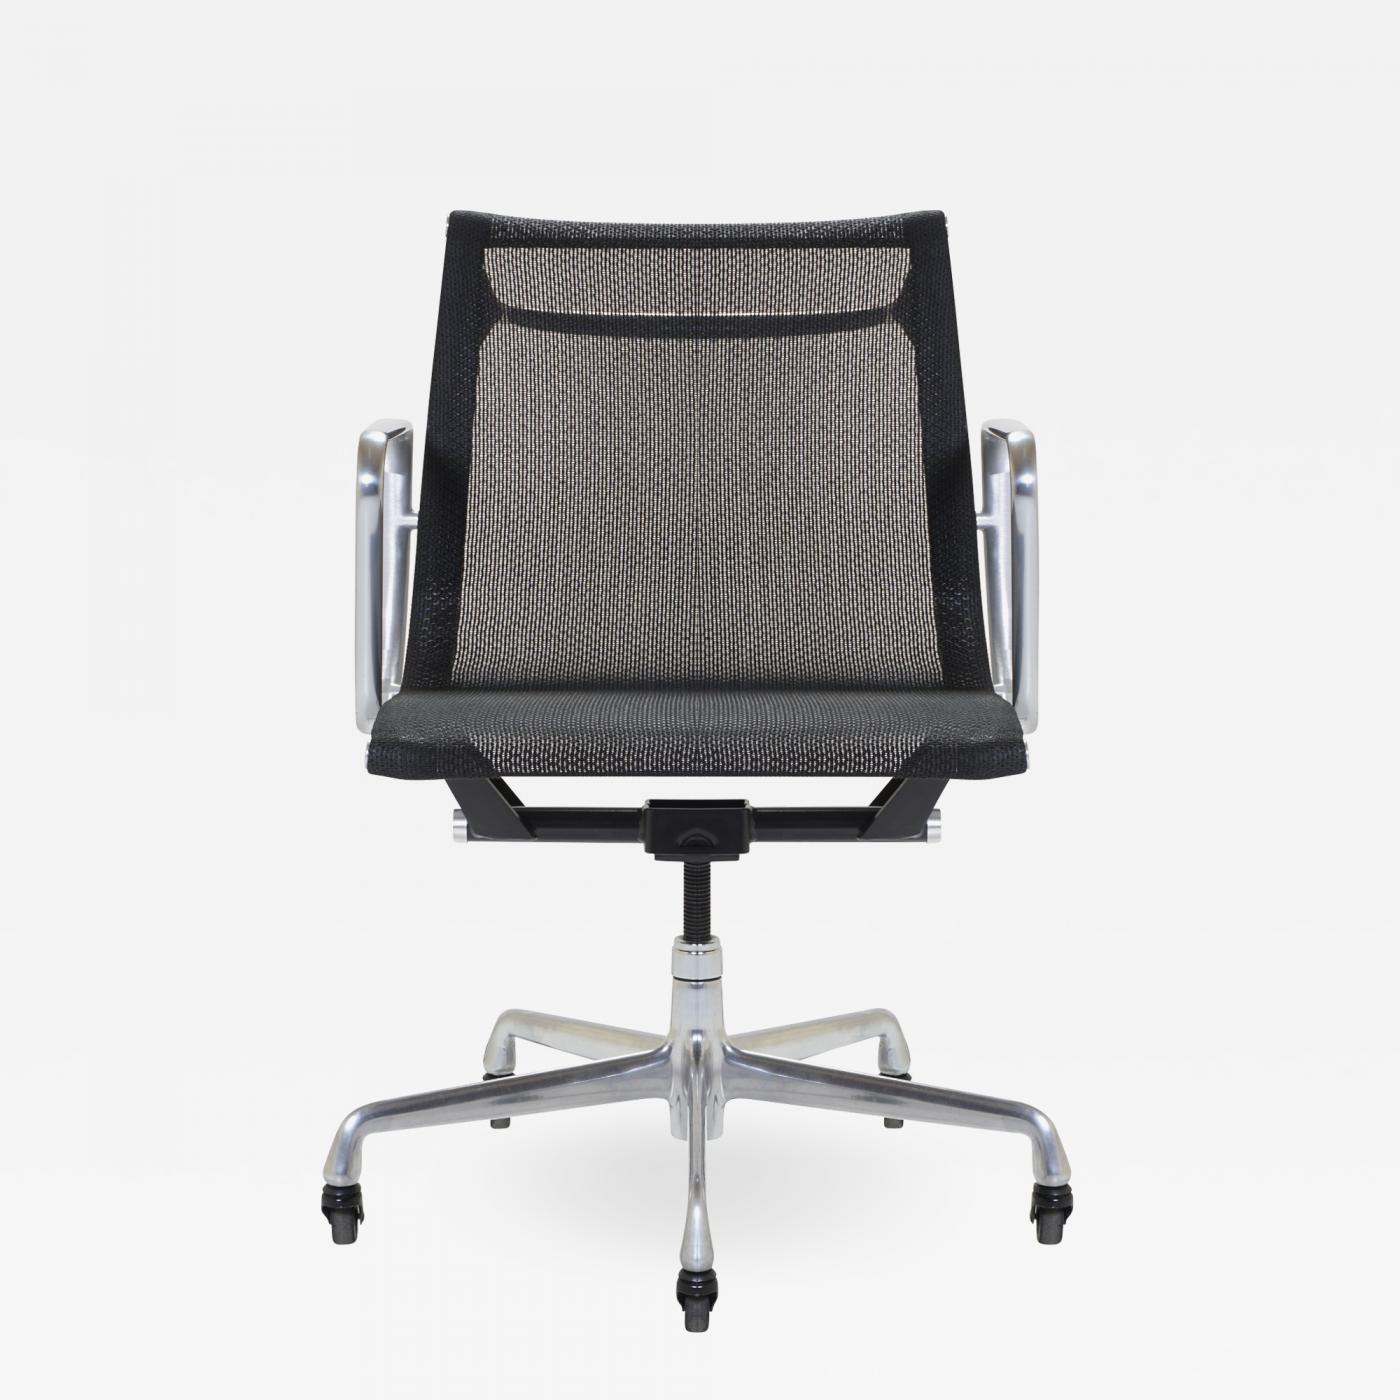 Charles And Ray Eames Chair Charles And Ray Eames Aluminum Group Management Chair By